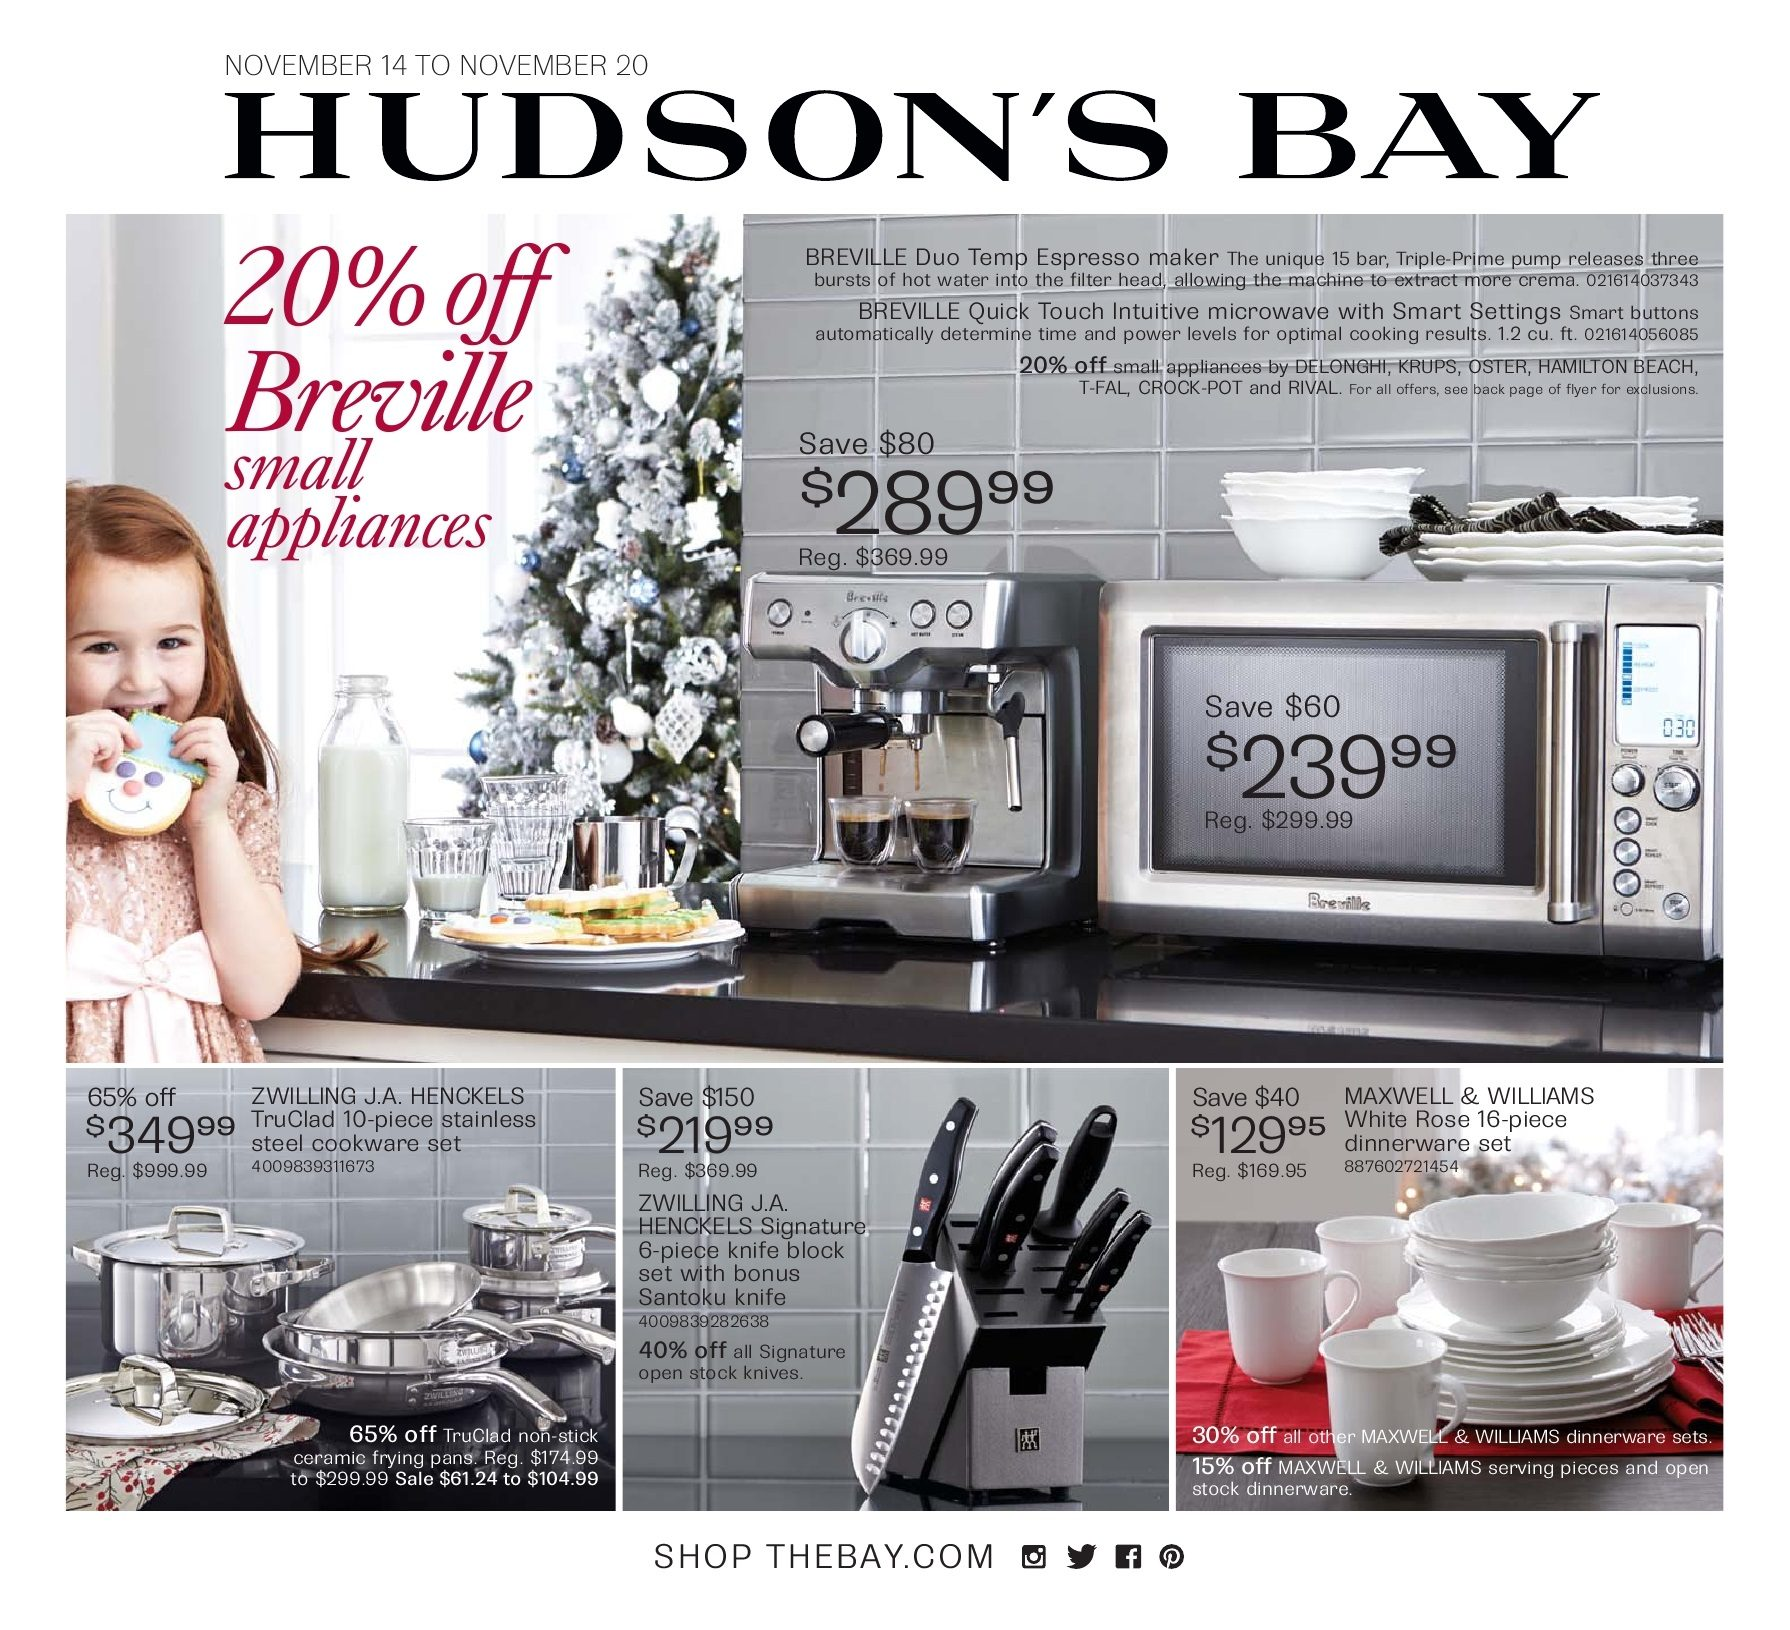 Loblaws Christmas Decorations: The Bay Weekly Flyer